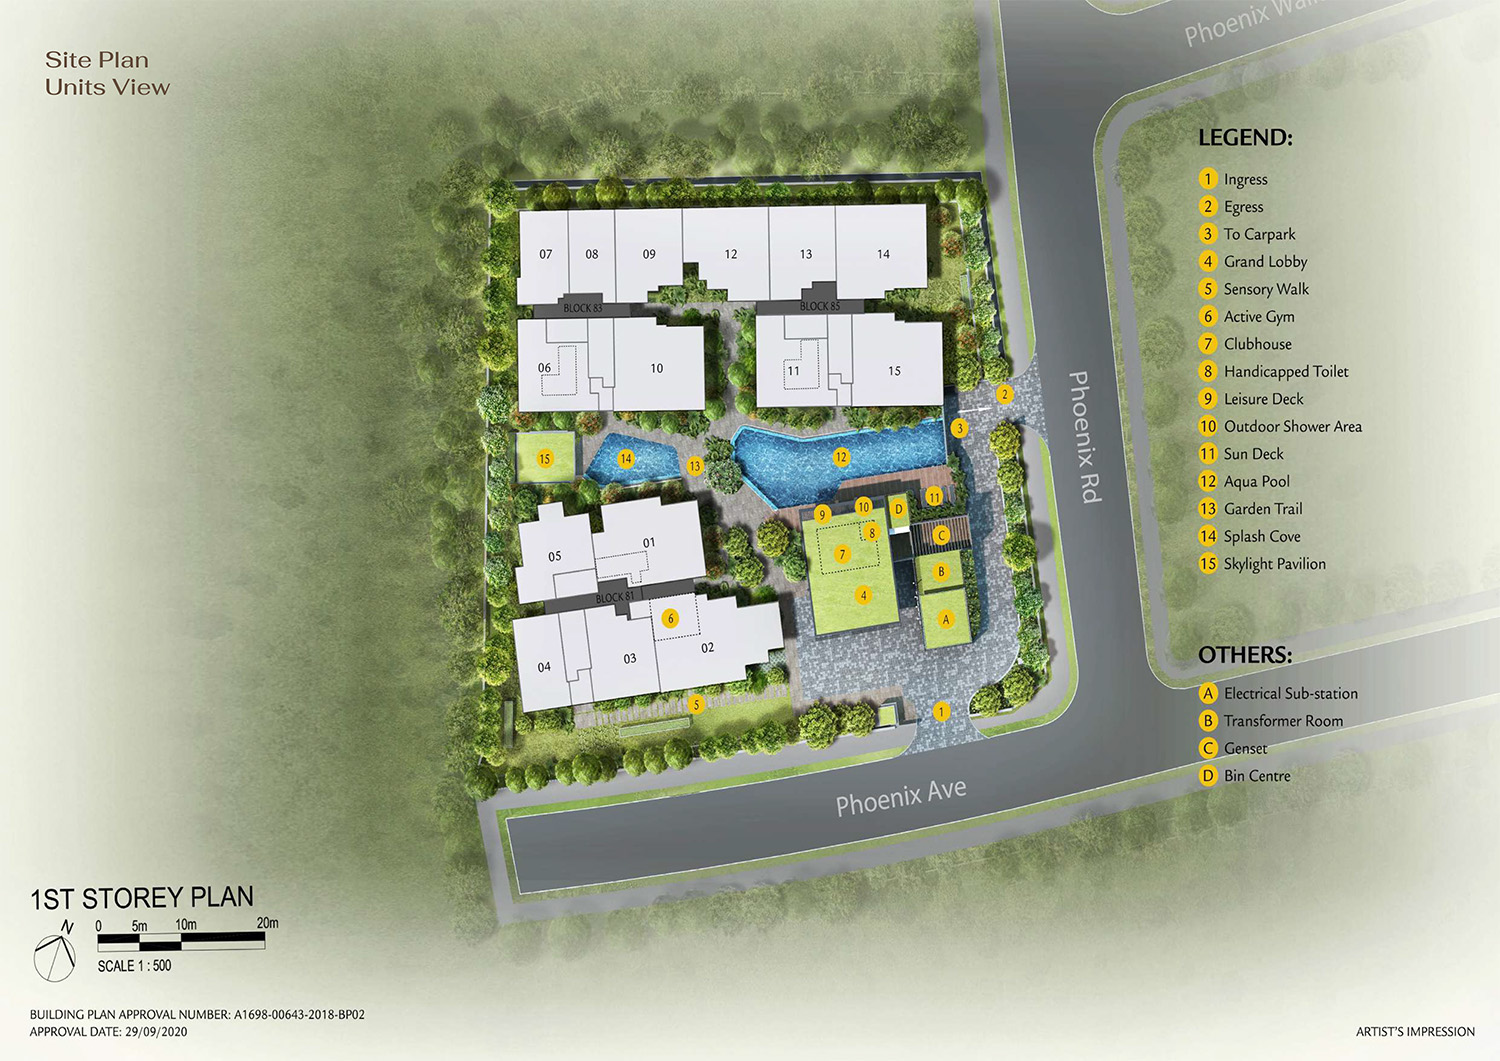 phoenix-residences-site-plan-new-condo